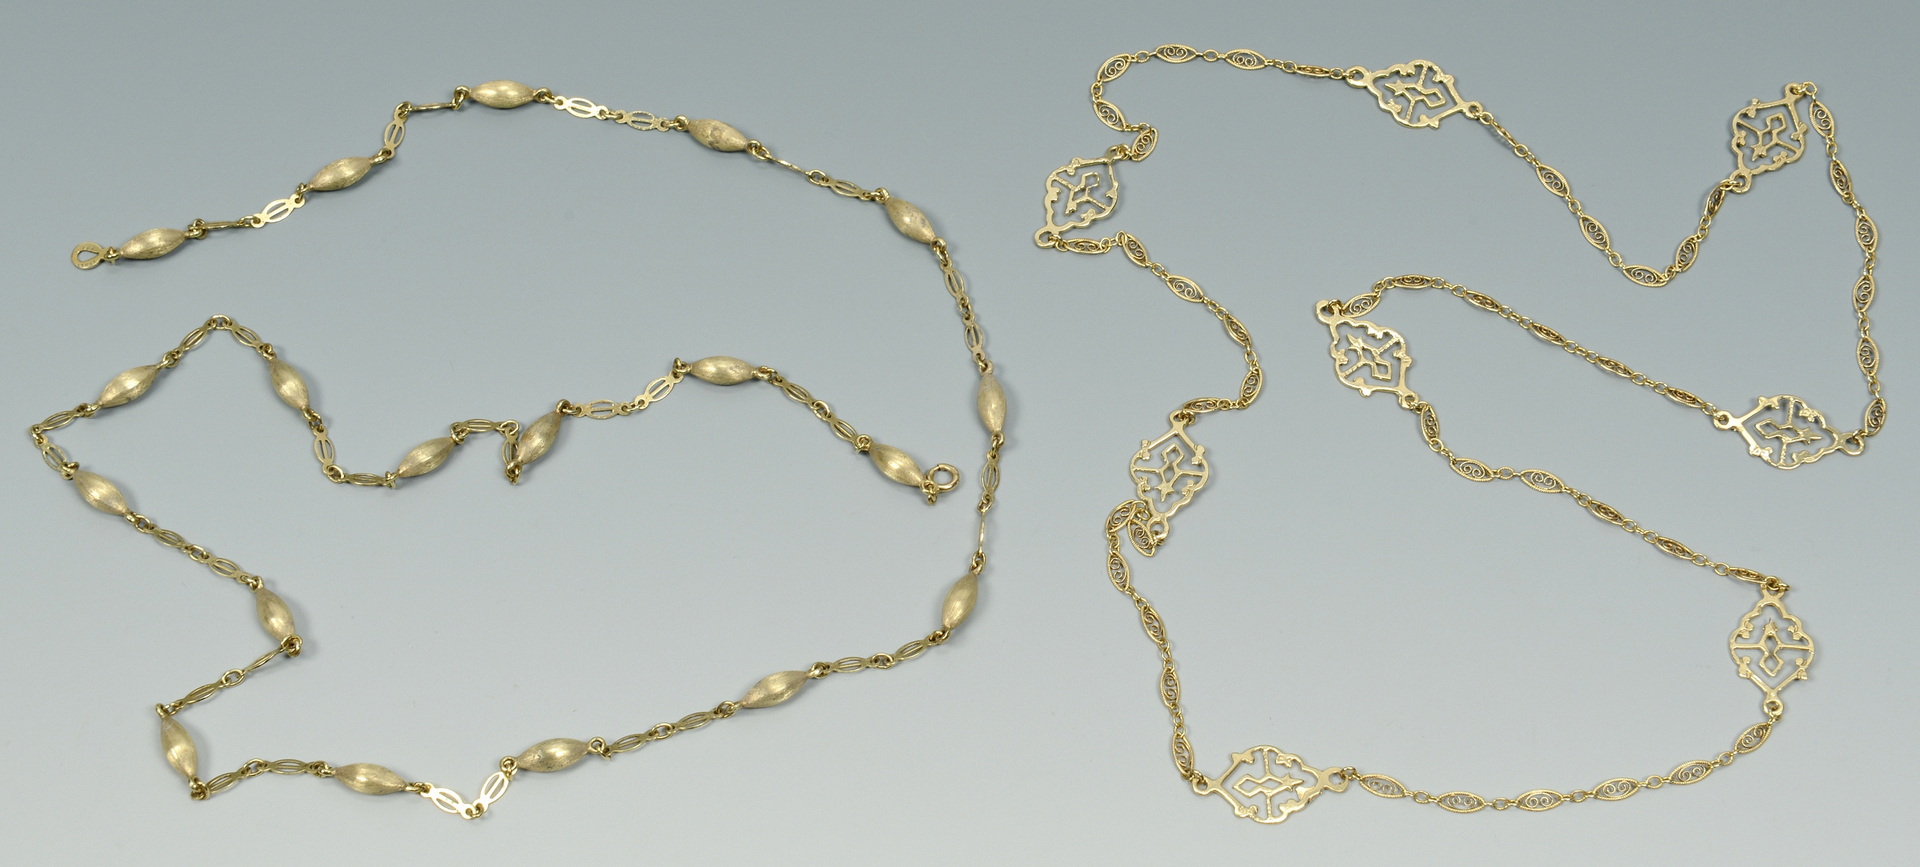 Lot 3088061: Two 14k Chain Necklaces